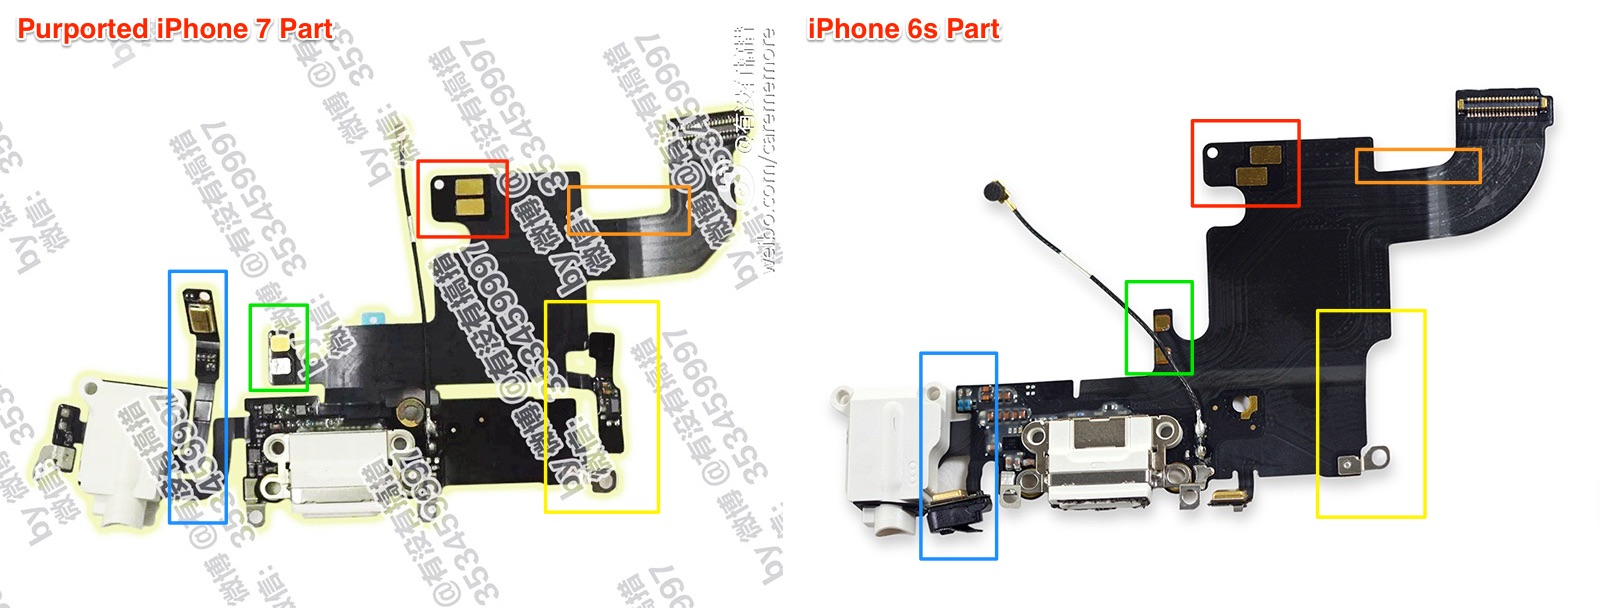 iPhone-7-vs-iPhone-6s-headphone-jack-NowhereElse-leak-001